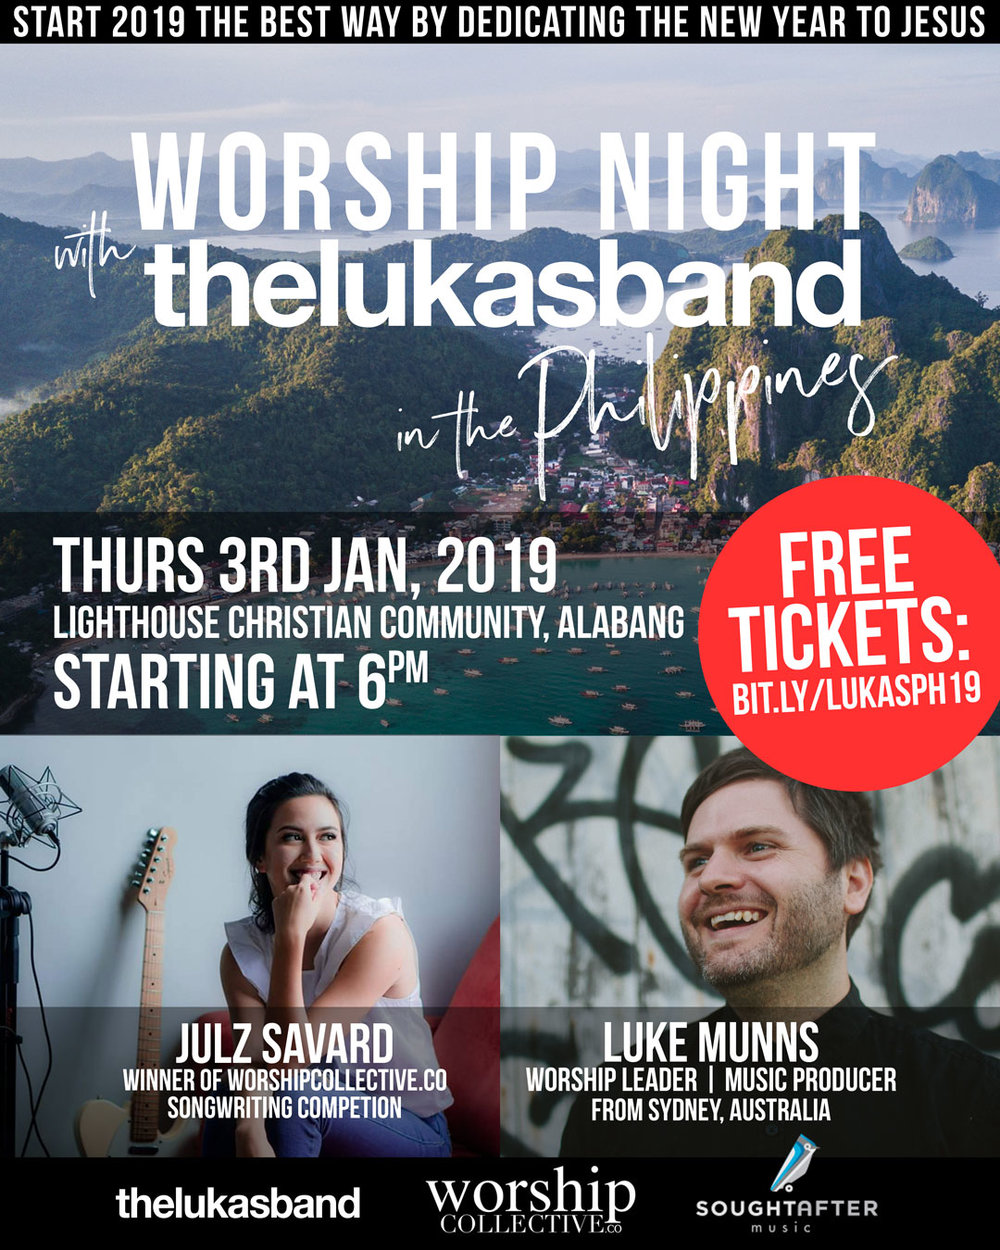 thelukasband-worship-night-manila-philippines-2019.jpg